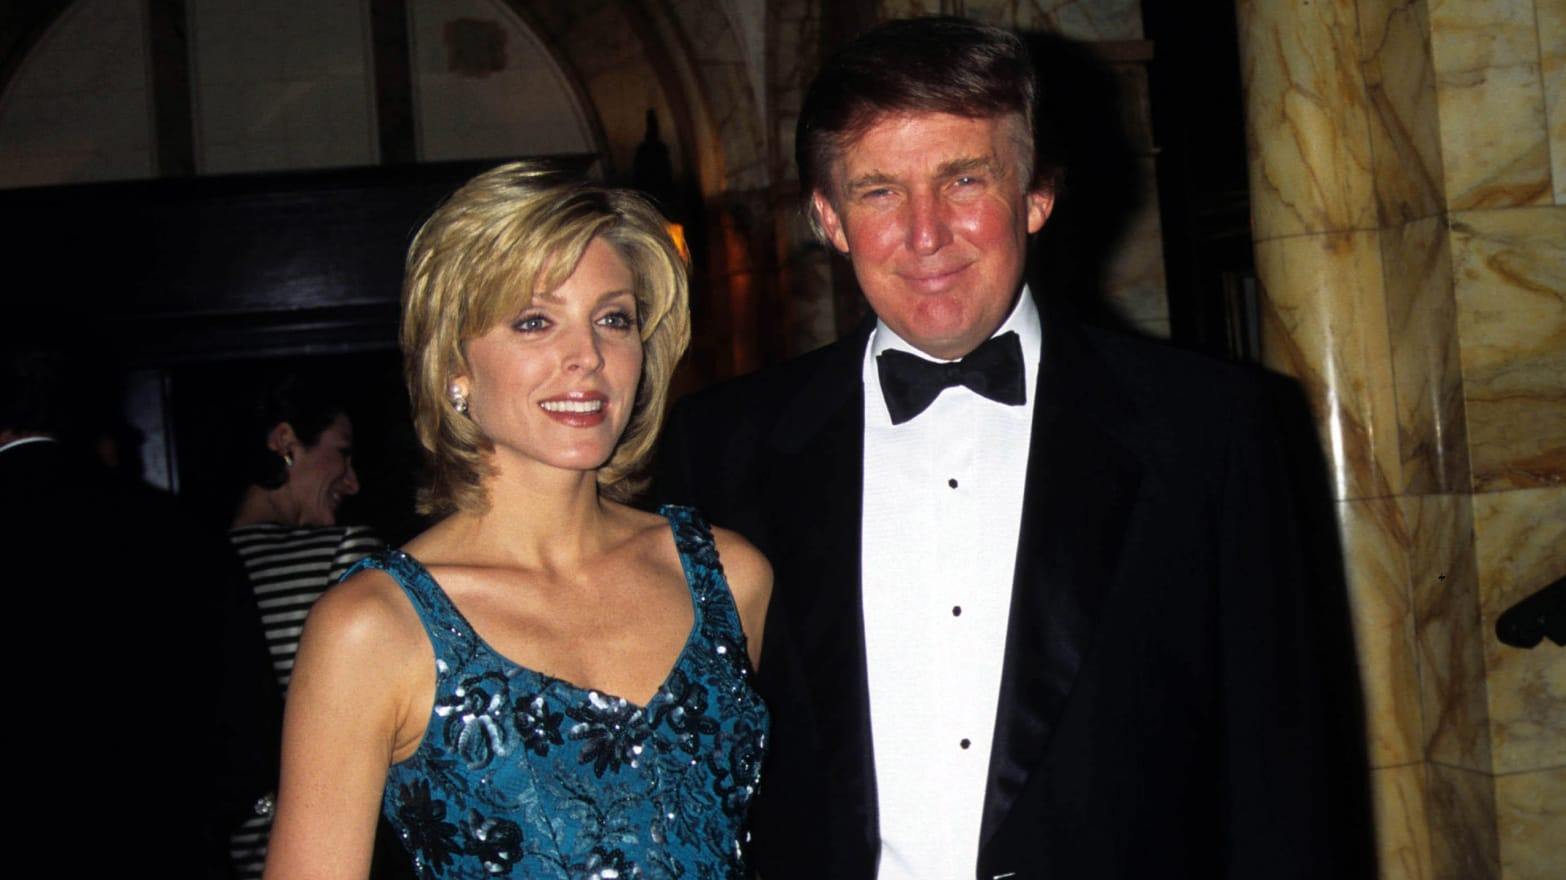 Donald Trump Made Out With Marla Maples as She Delivered His